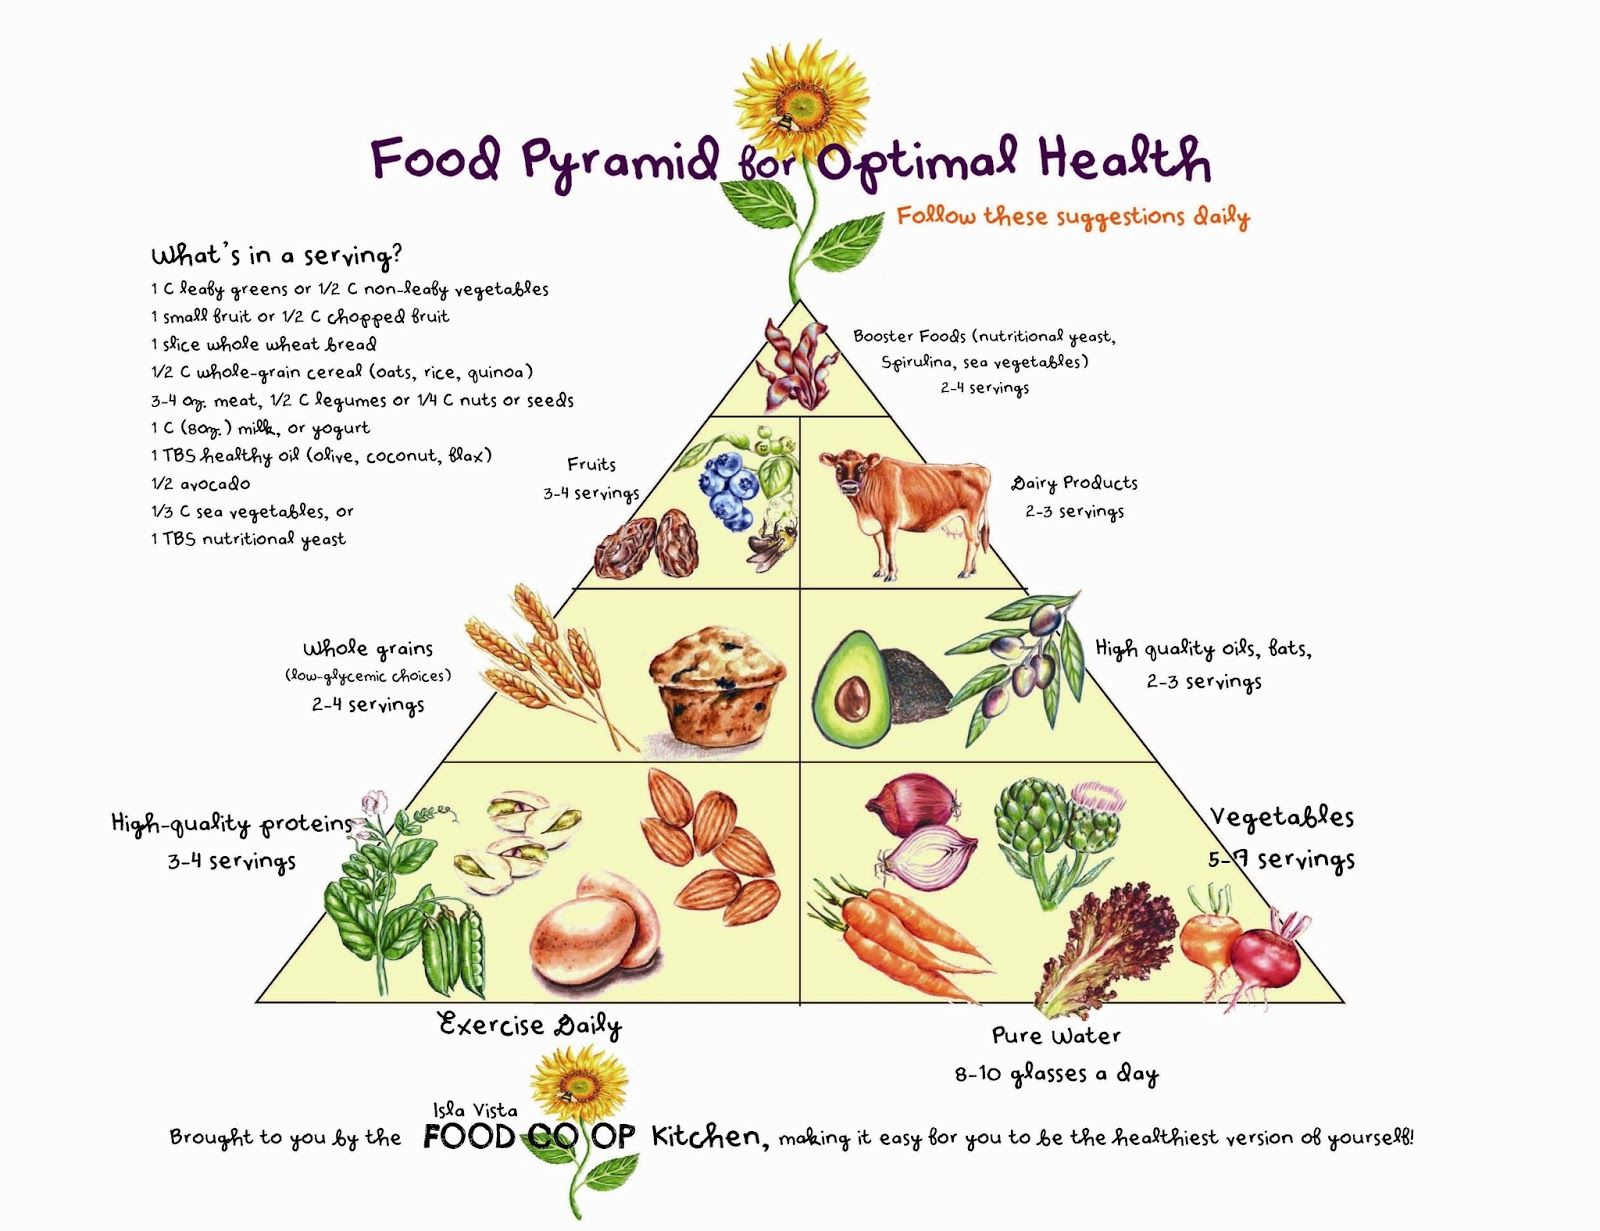 Food Pyramid For Optimal Health